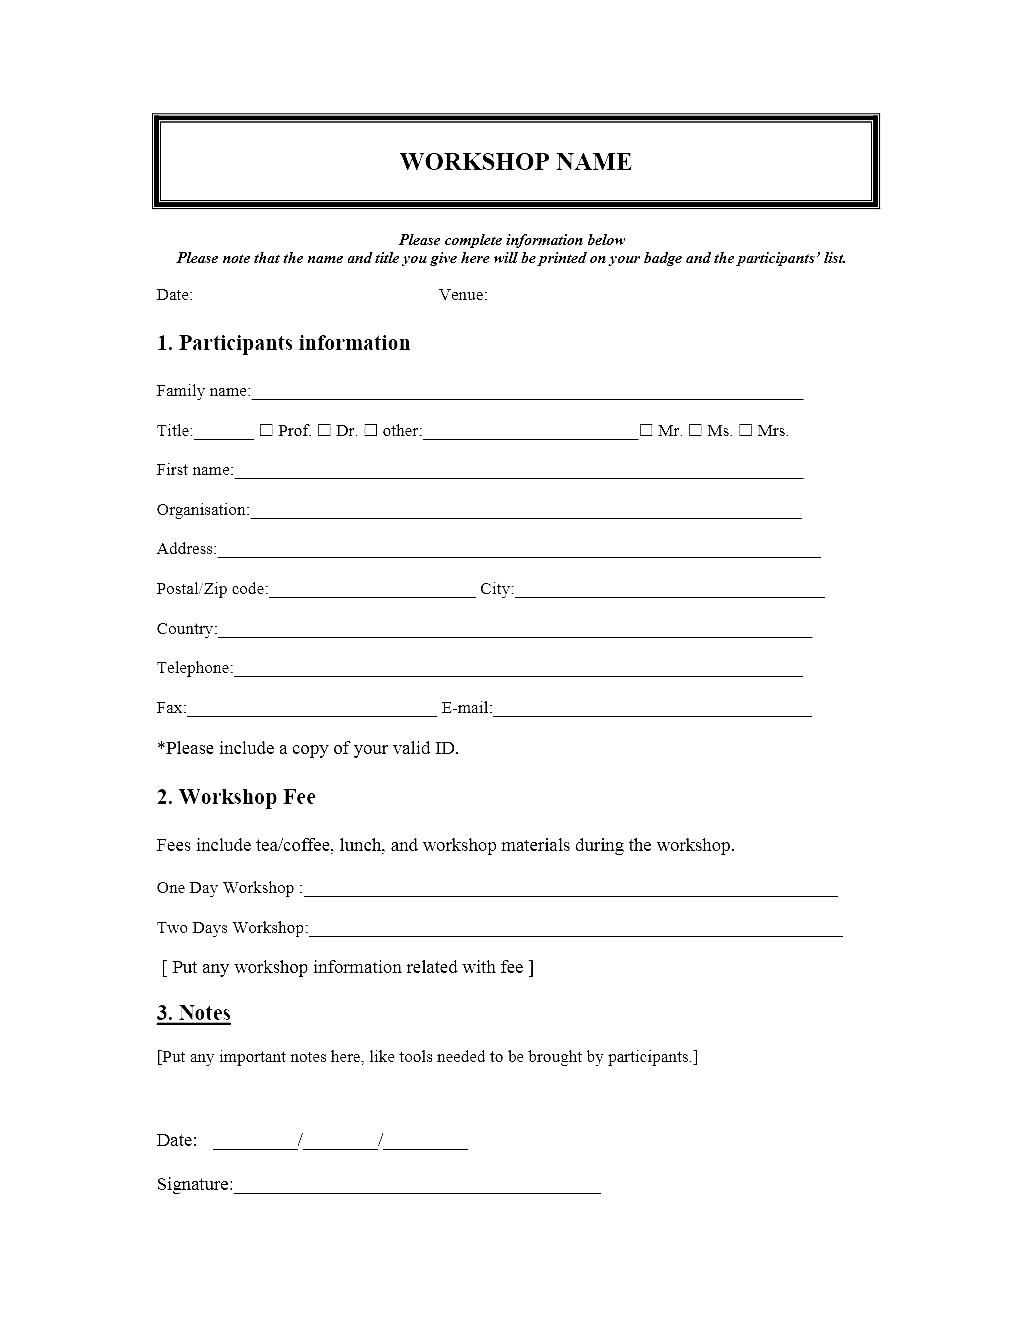 Free Event Registration Form Template Word Intended For Registration Form Template Word Free